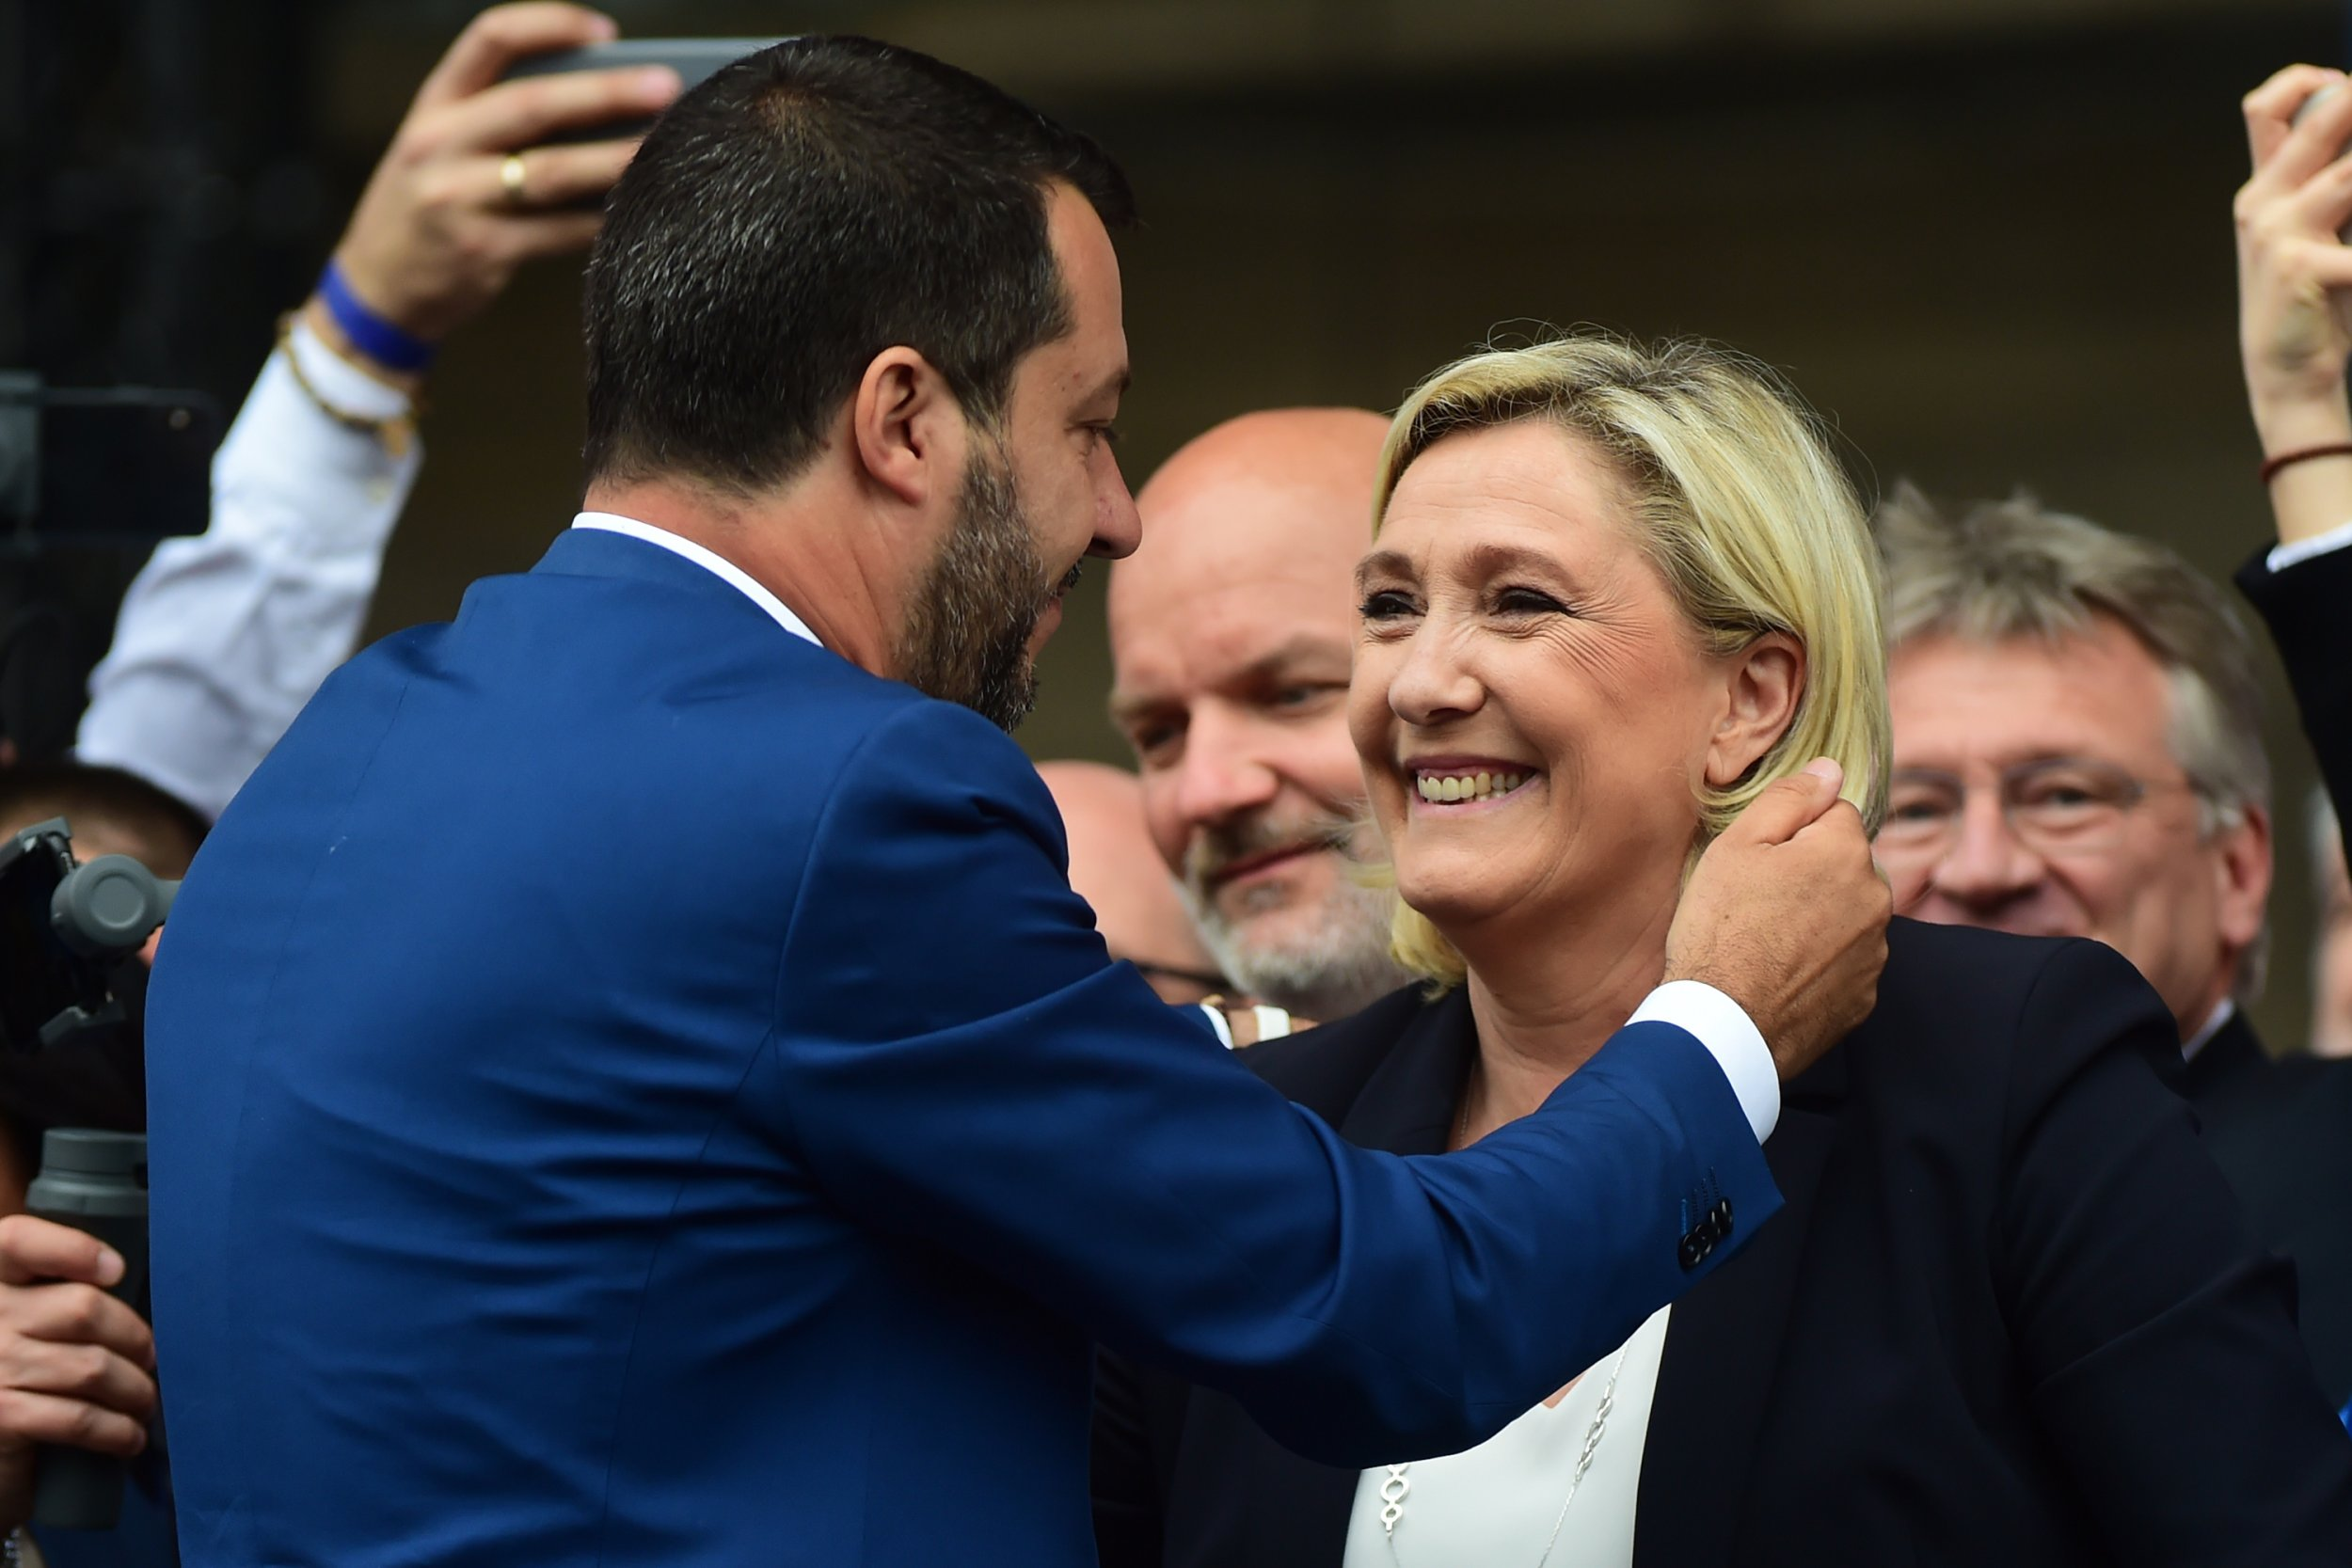 , Matteo Salvini embraces Marine Le Pen during demonstration ahead of the European elections in Piazza Duomo on May 18, 2019 in Milan, Italy </span> <span class=